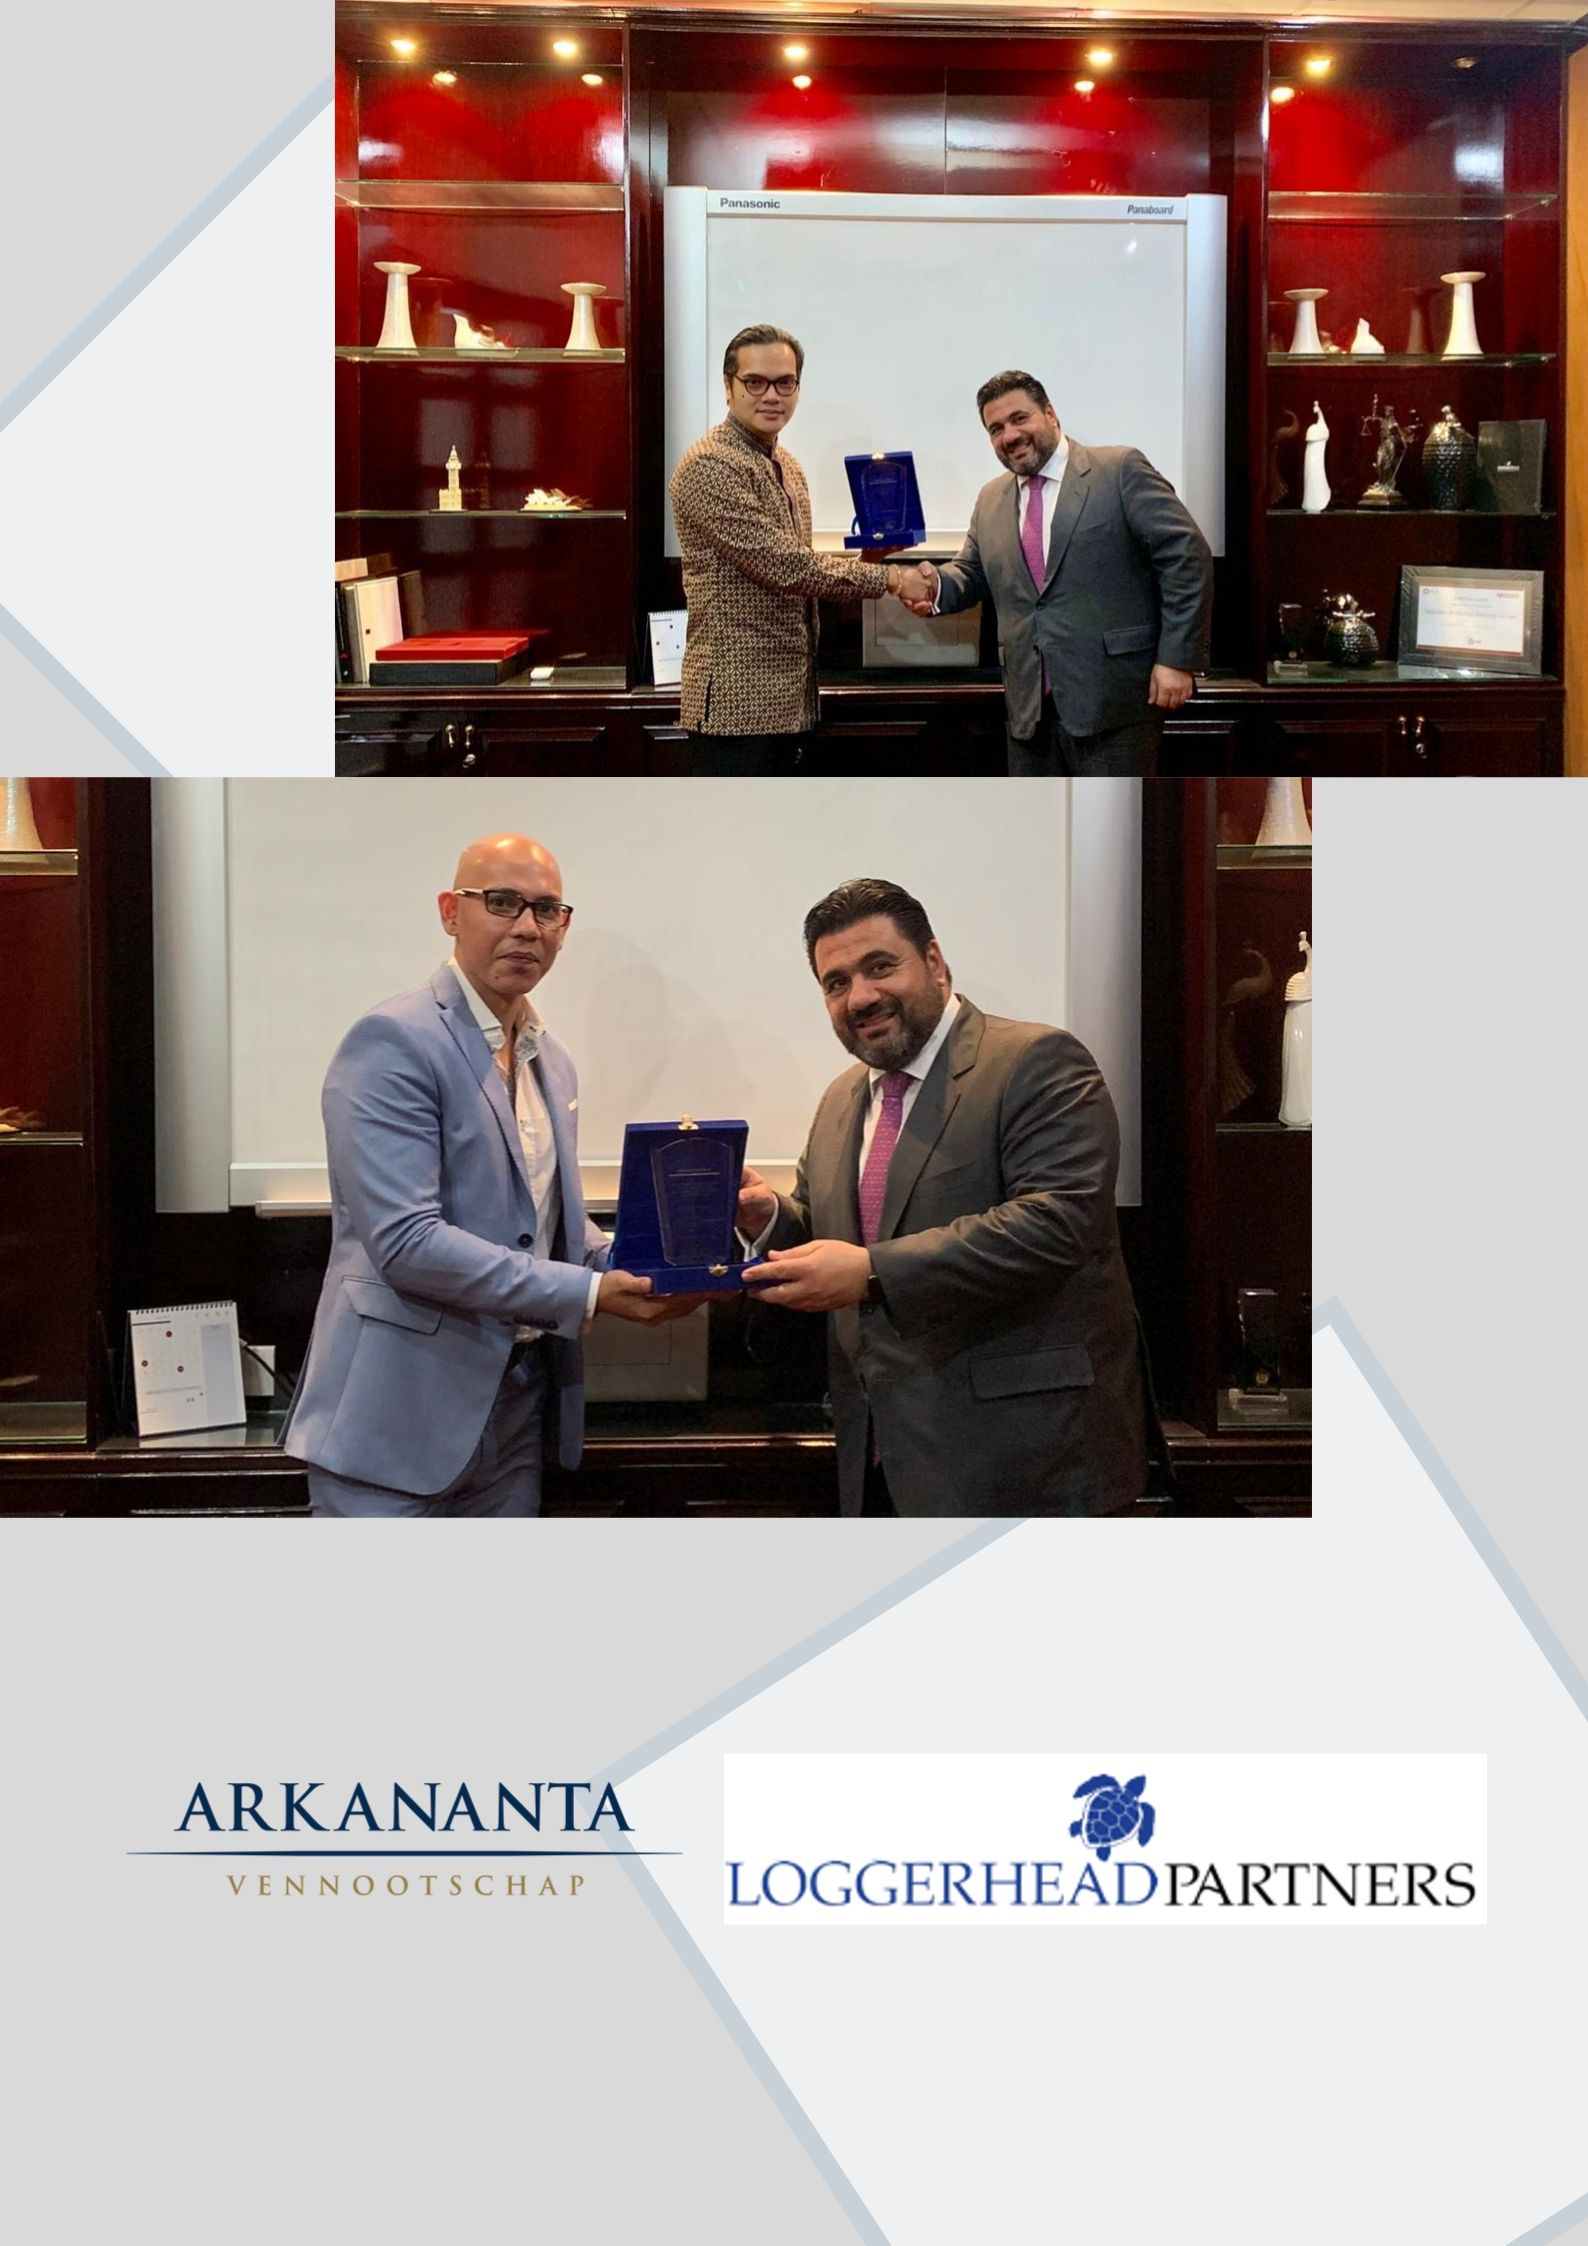 ARKANANTA IS NOW IN COLLABORATION WITH LOGGERHEAD PARTNERS